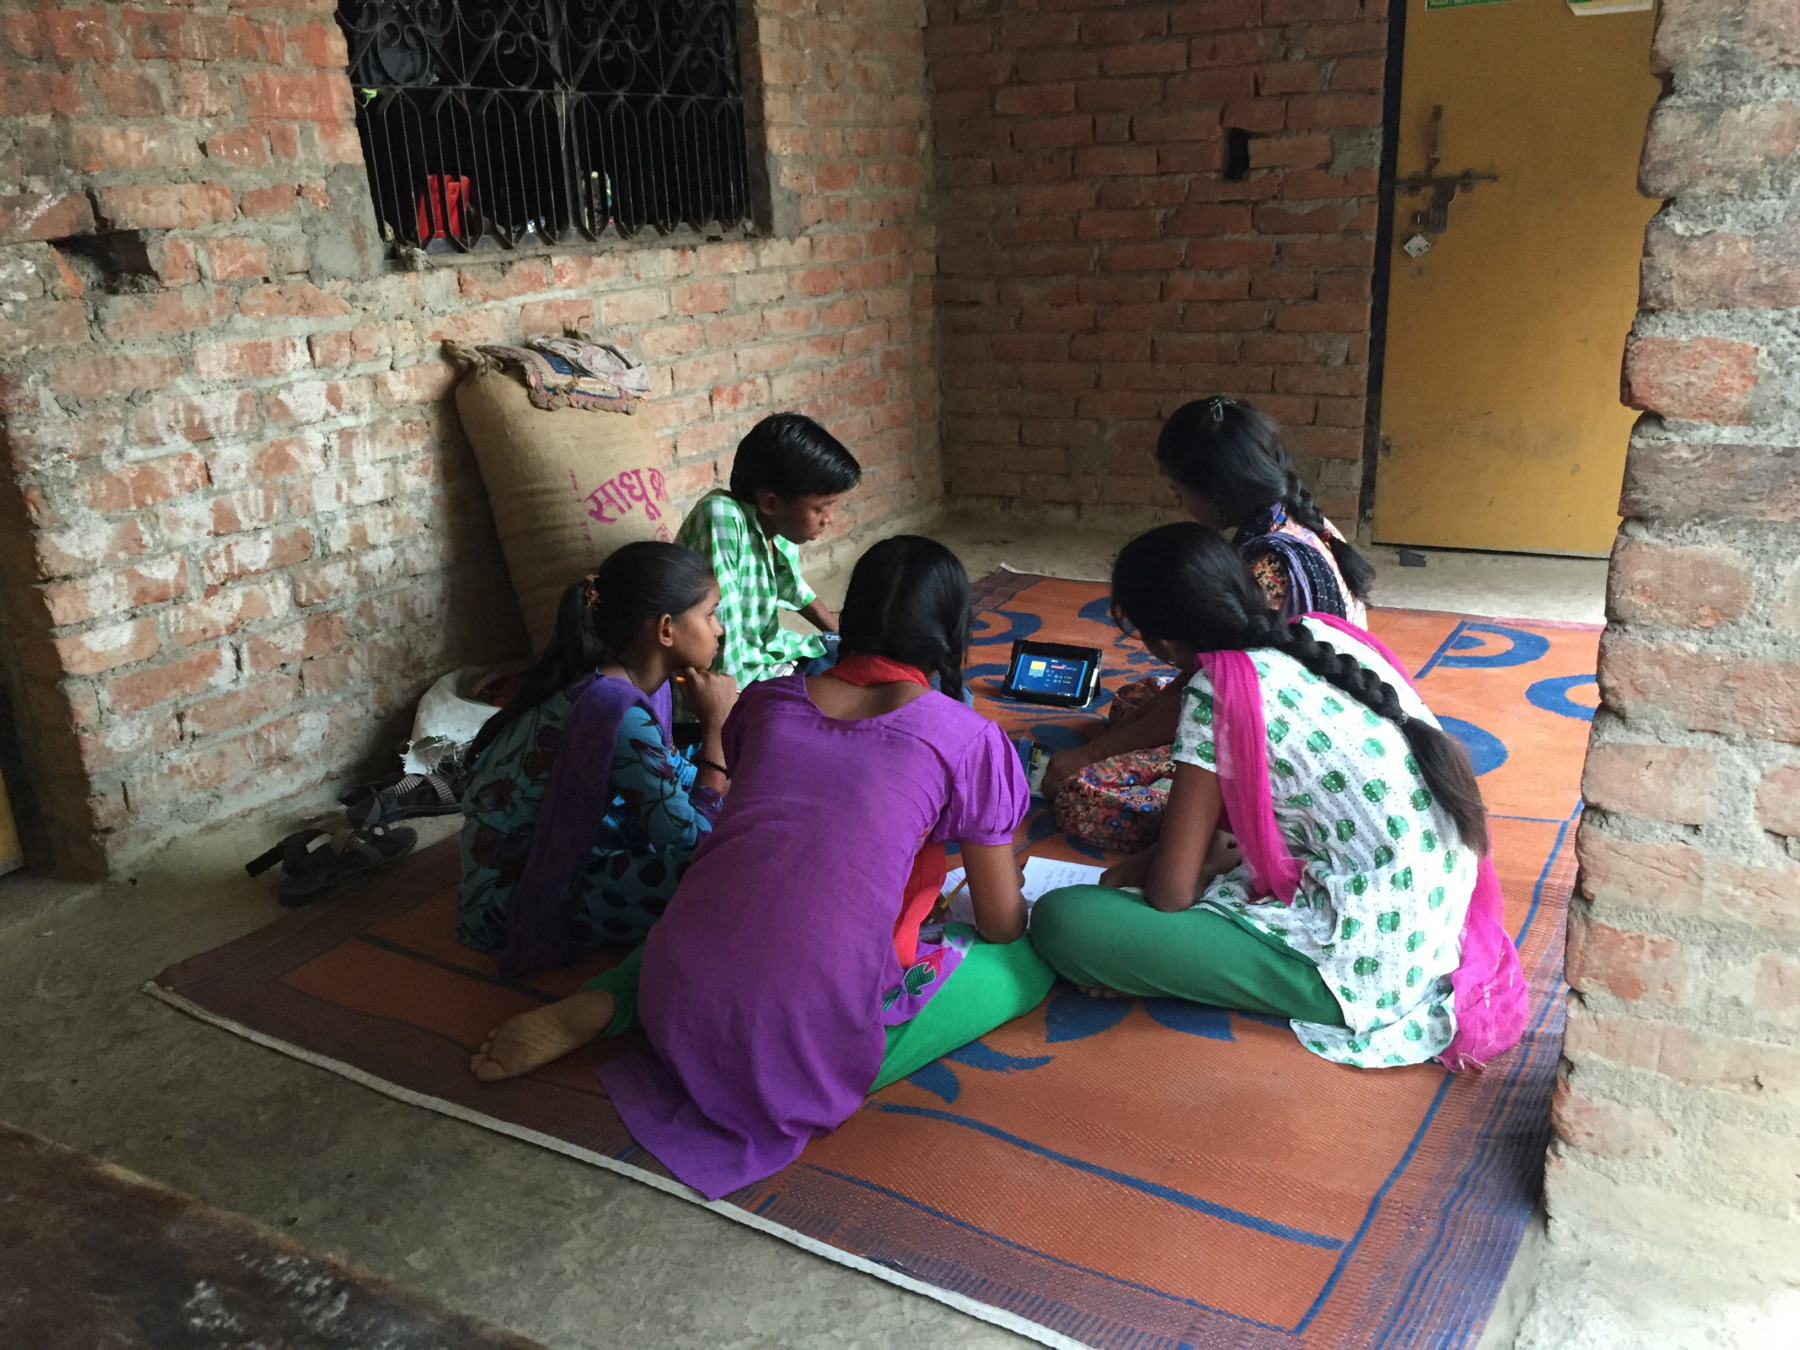 5 children sitting around a small tablet computer placed on the carpet, watching a video.